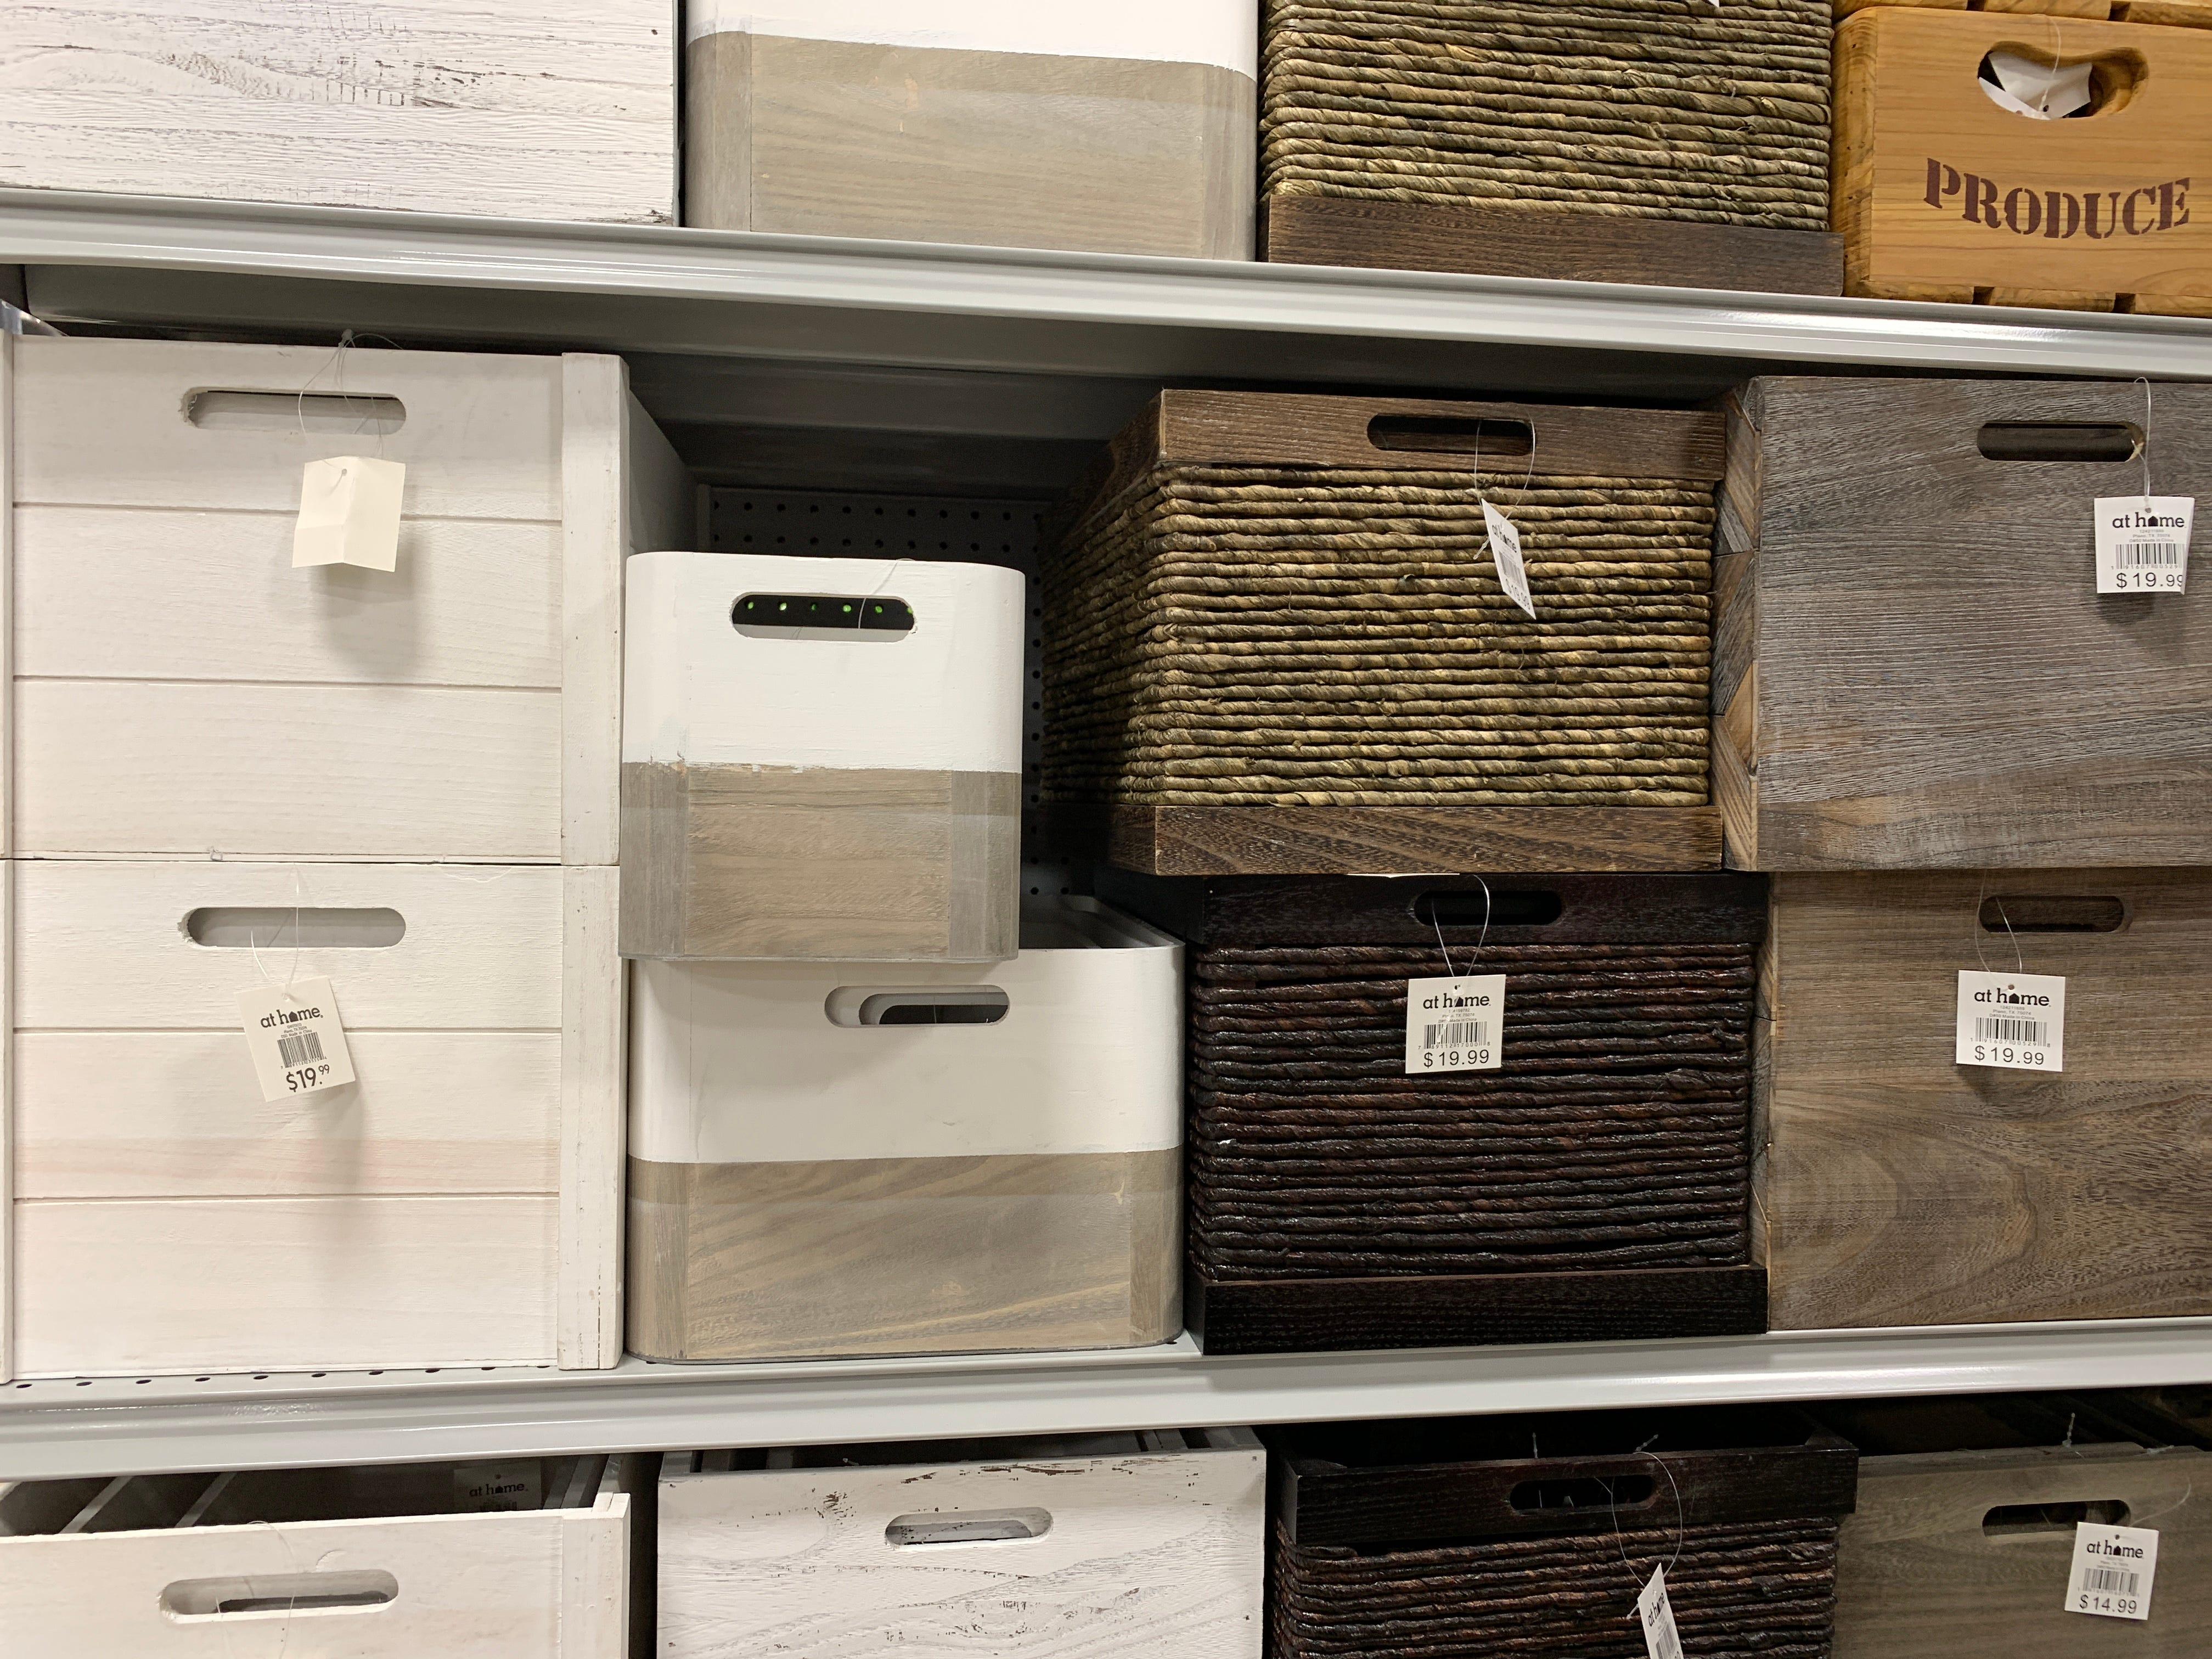 At Home, which bills itself as a home decor superstore, has opened at Laurel Square shopping center on Route 70 in Brick.